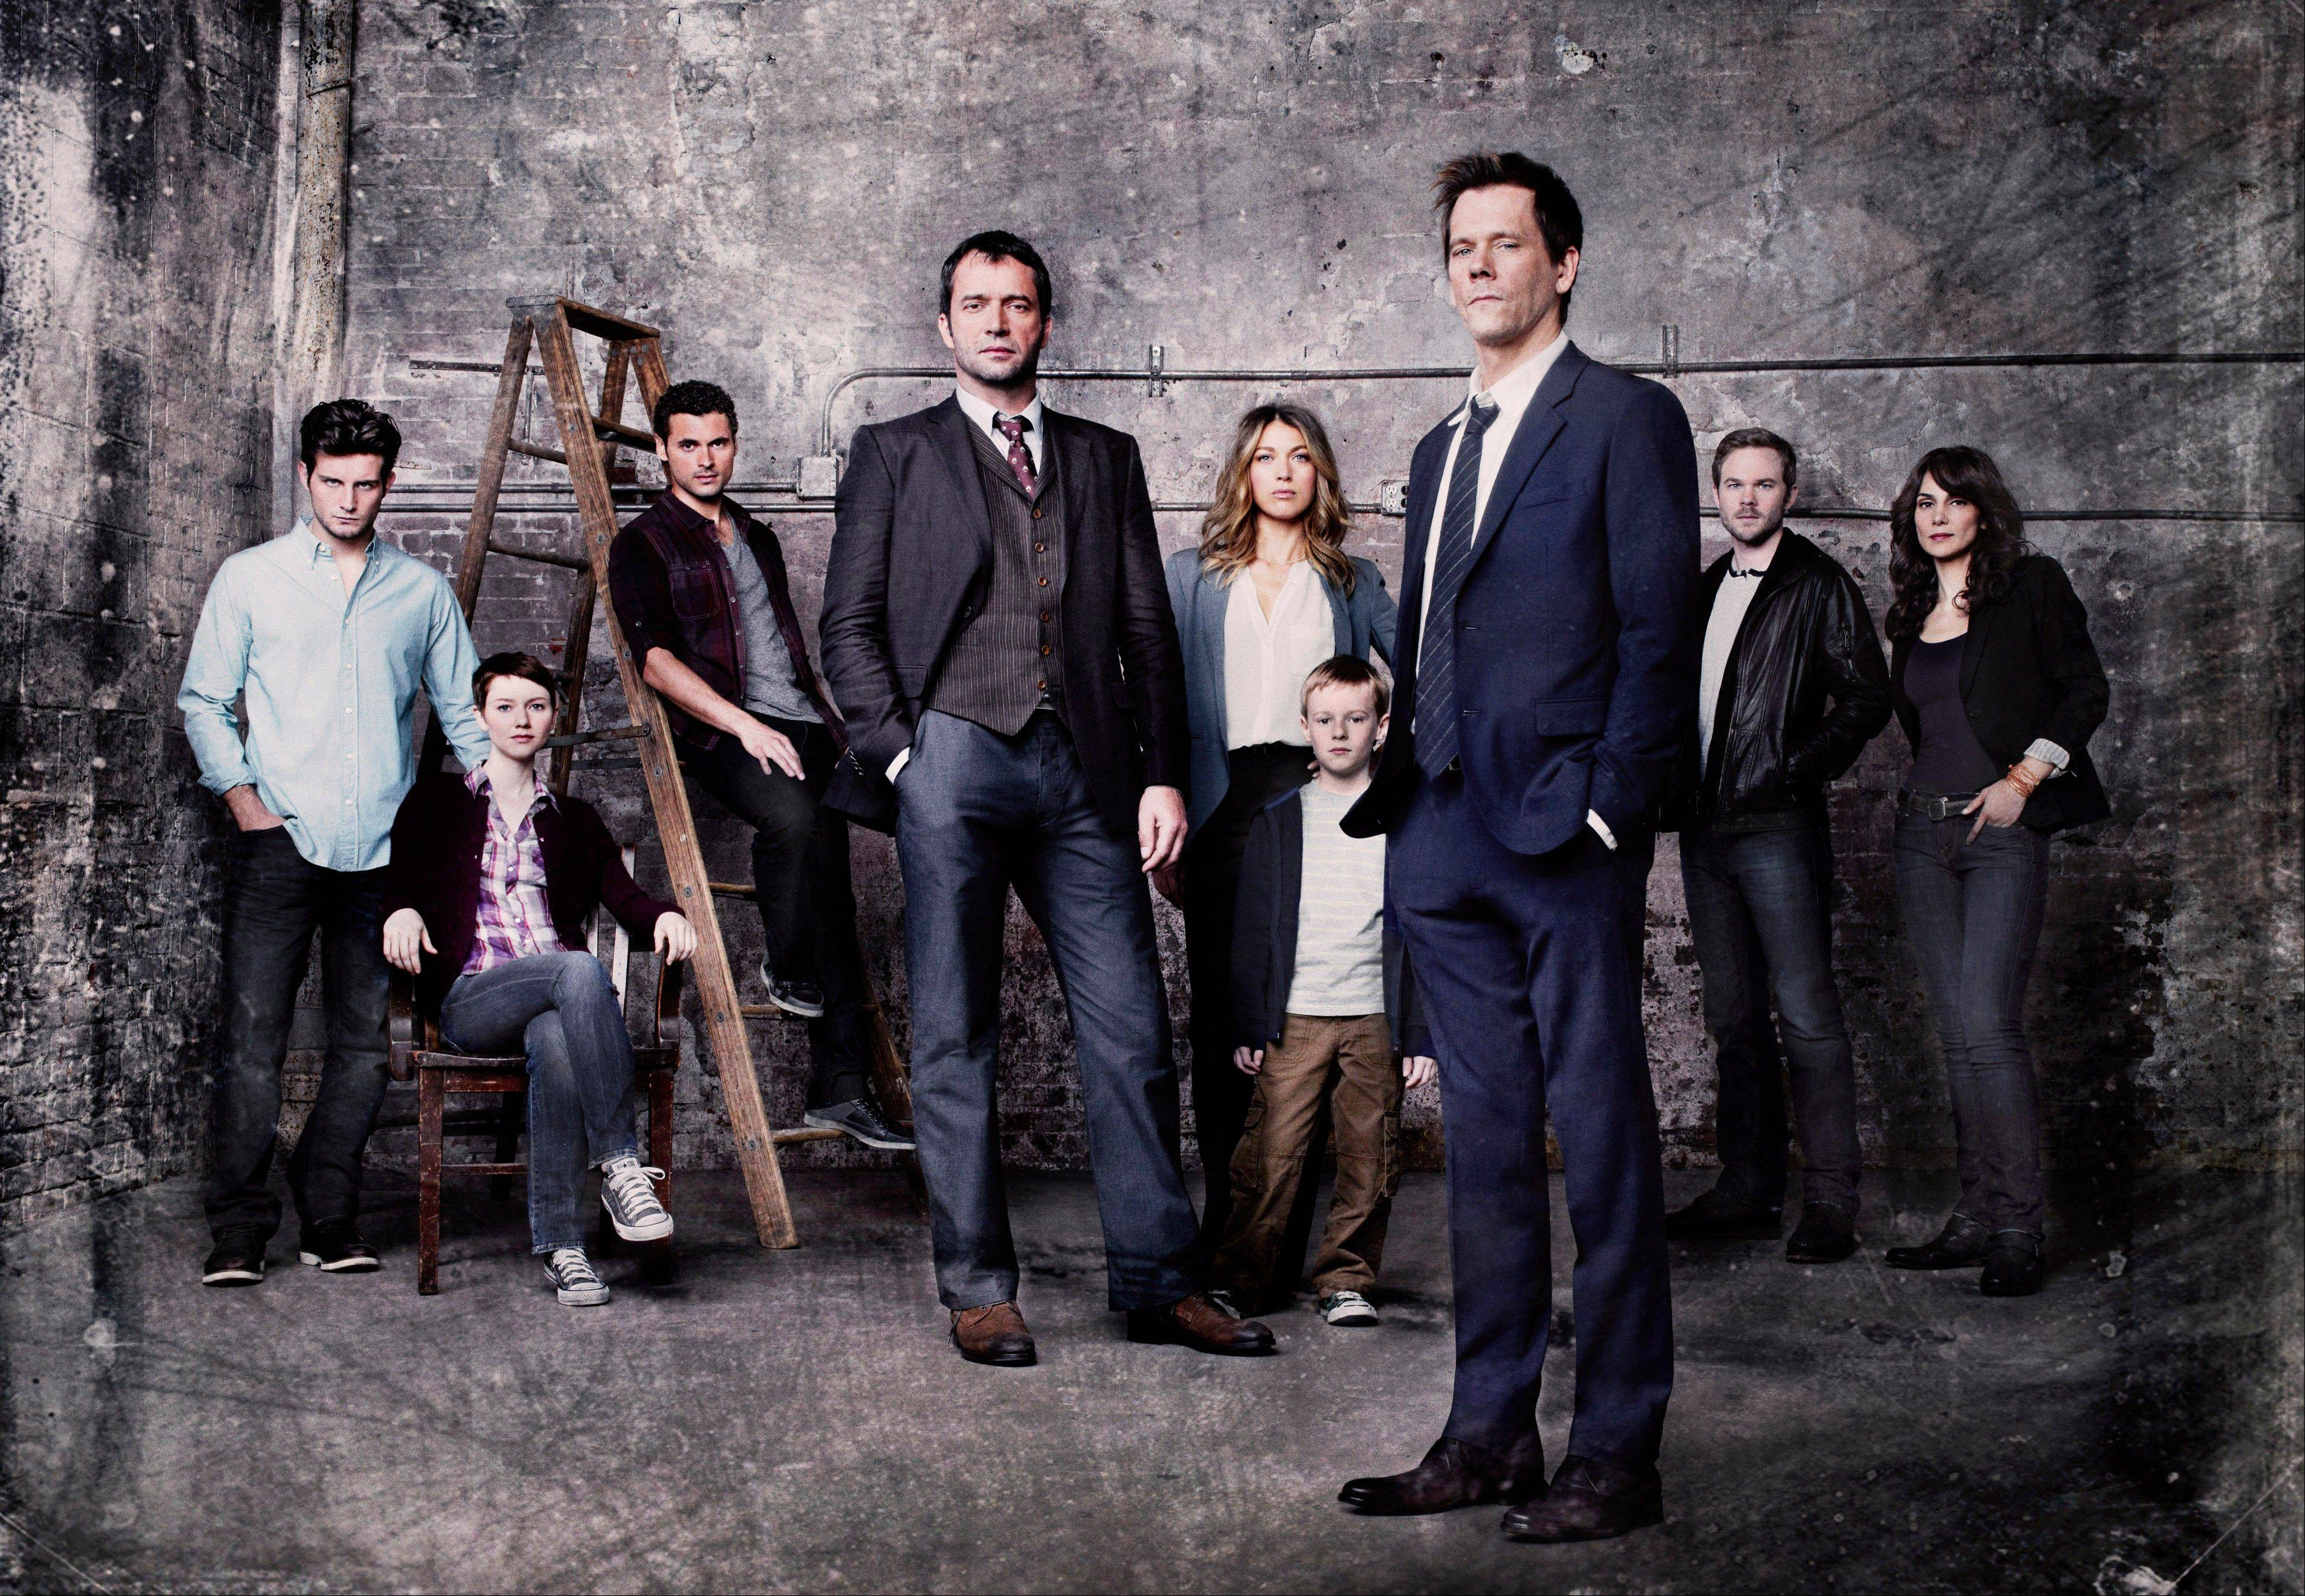 "Kevin Bacon, front right, plays former FBI agent Ryan Hardy, who is called out of retirement to track down James Purefoy, fourth from left, as Joe Carroll, in the new psychological thriller ""The Following"" on Fox. The rest of the cast includes, from rear left, Nico Tortorella, Valorie Curry, Adan Canto, Natalie Zea, Kyle Catlett, Shawn Ashmore and Annie Parisse."